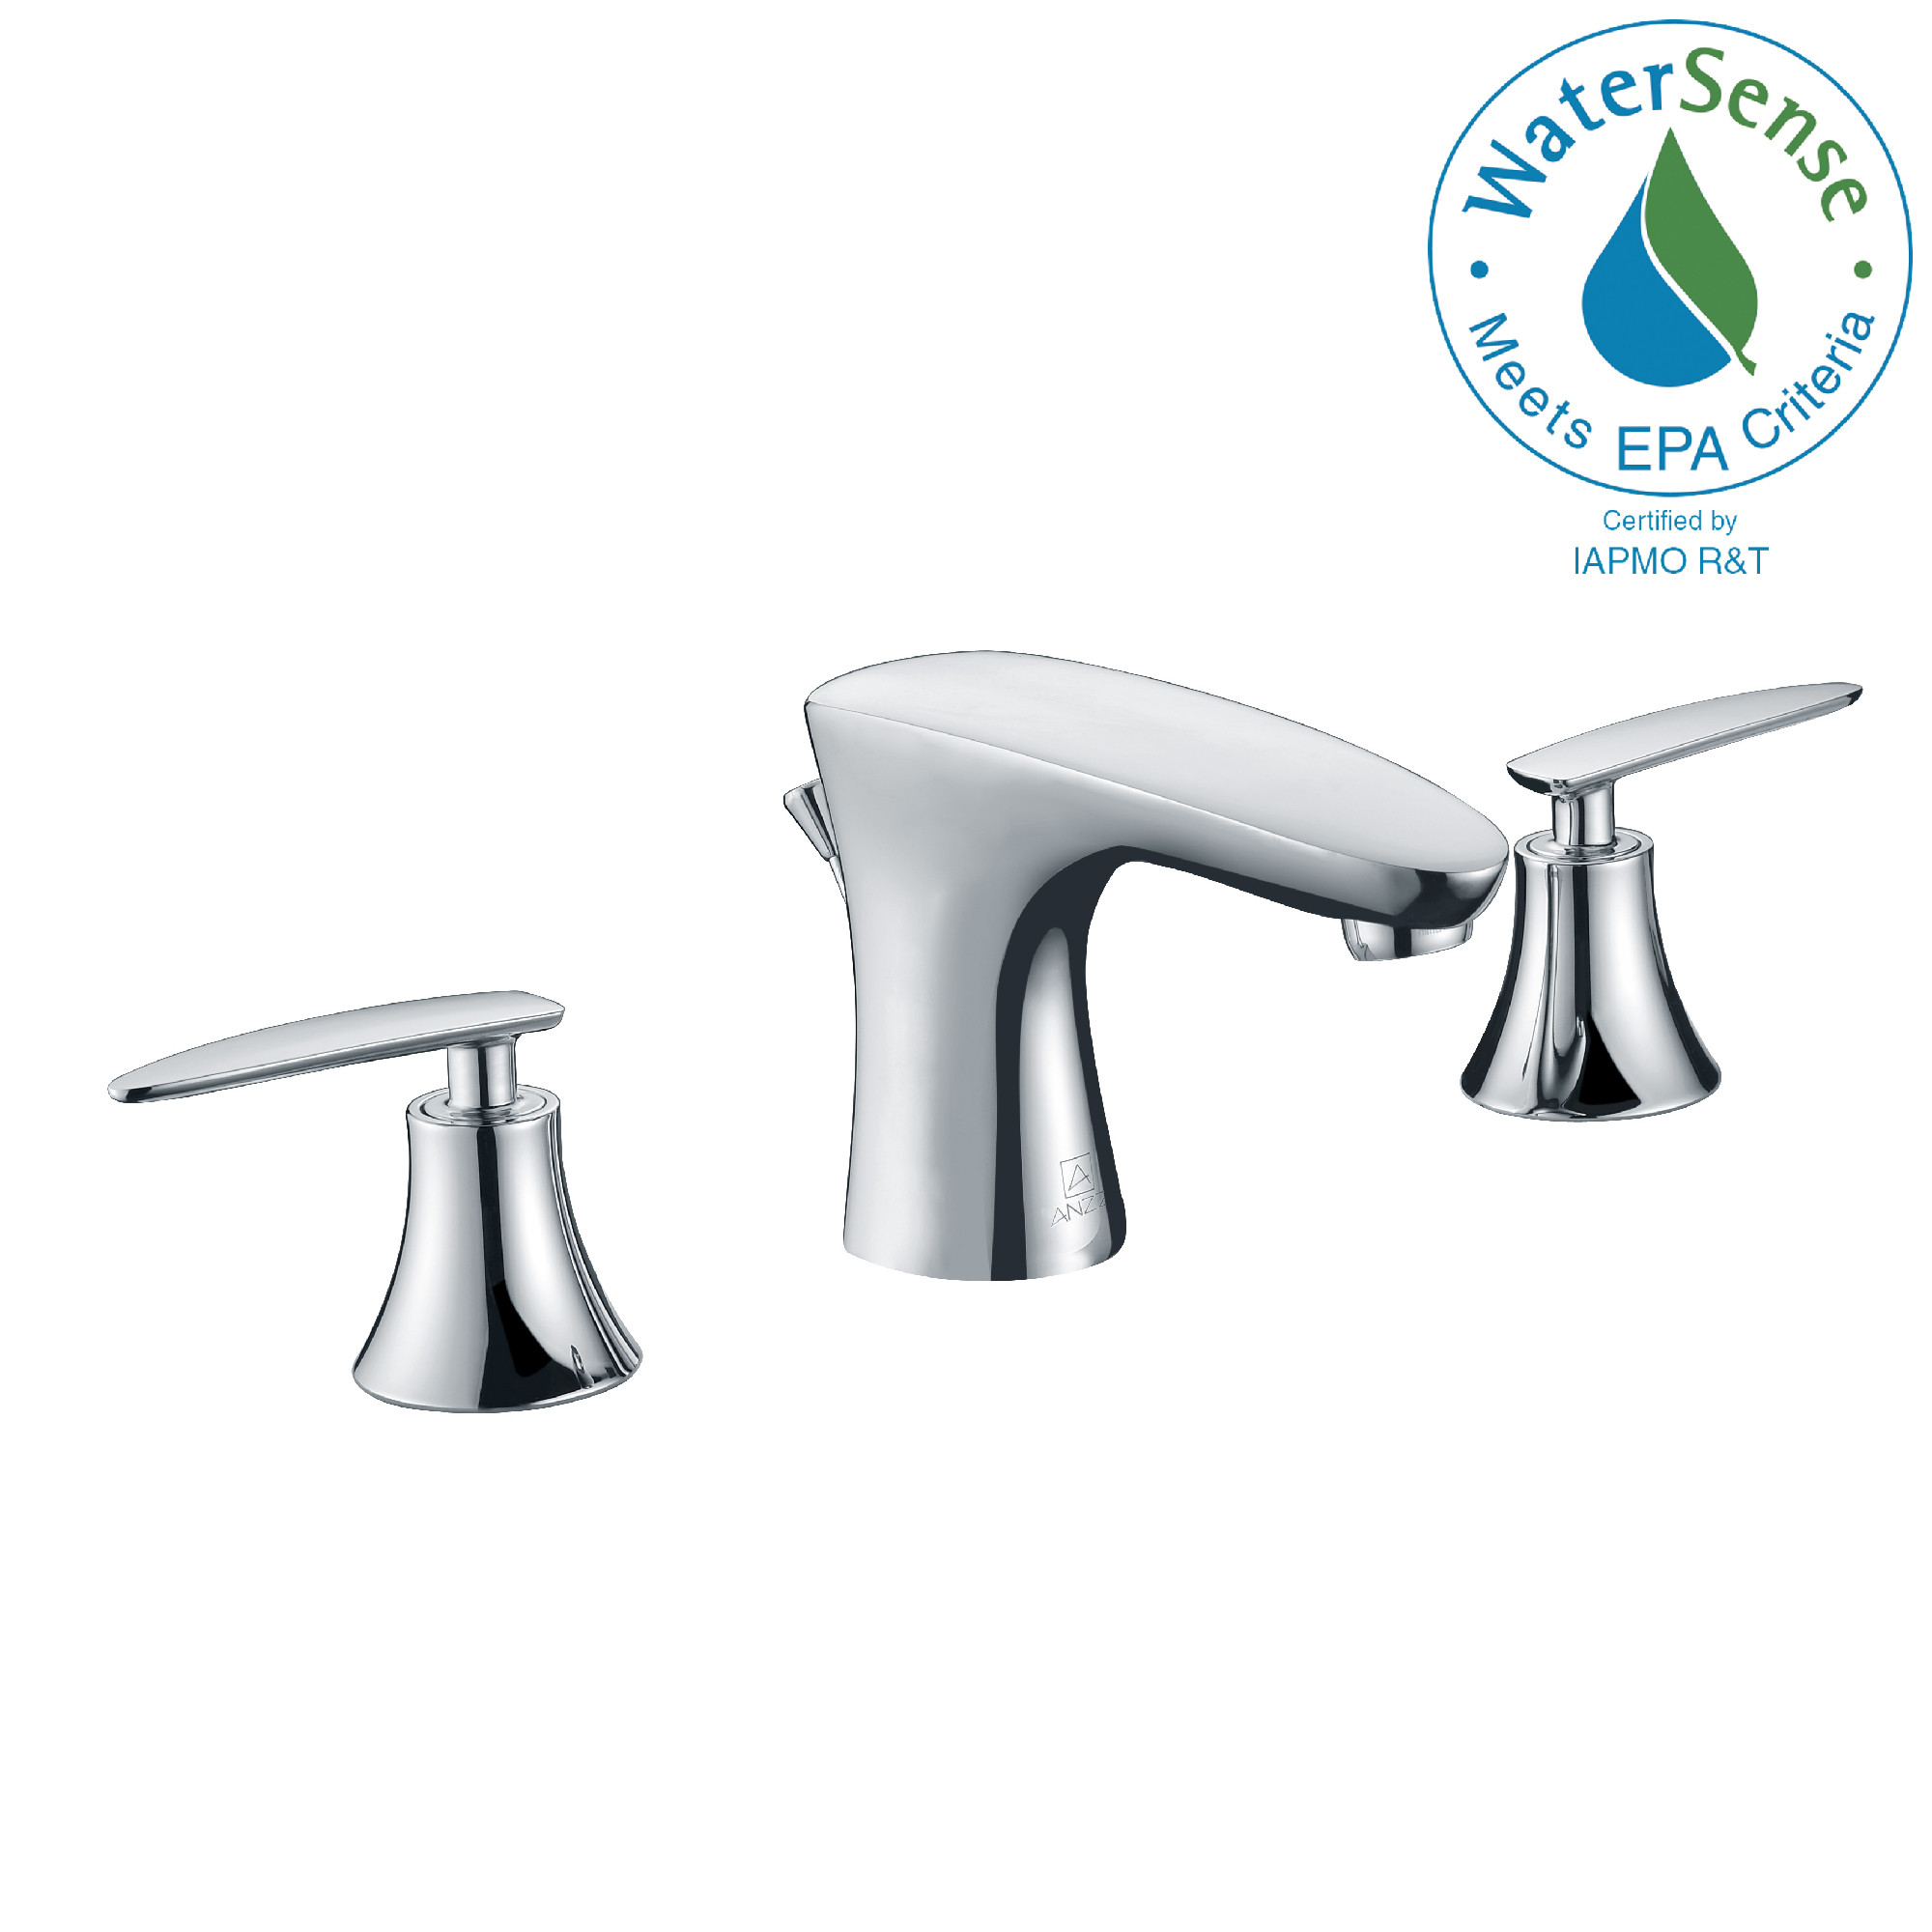 ANZZI L-AZ024 Chord Widespread Low-Arc Bathroom Faucet In Polished Chrome